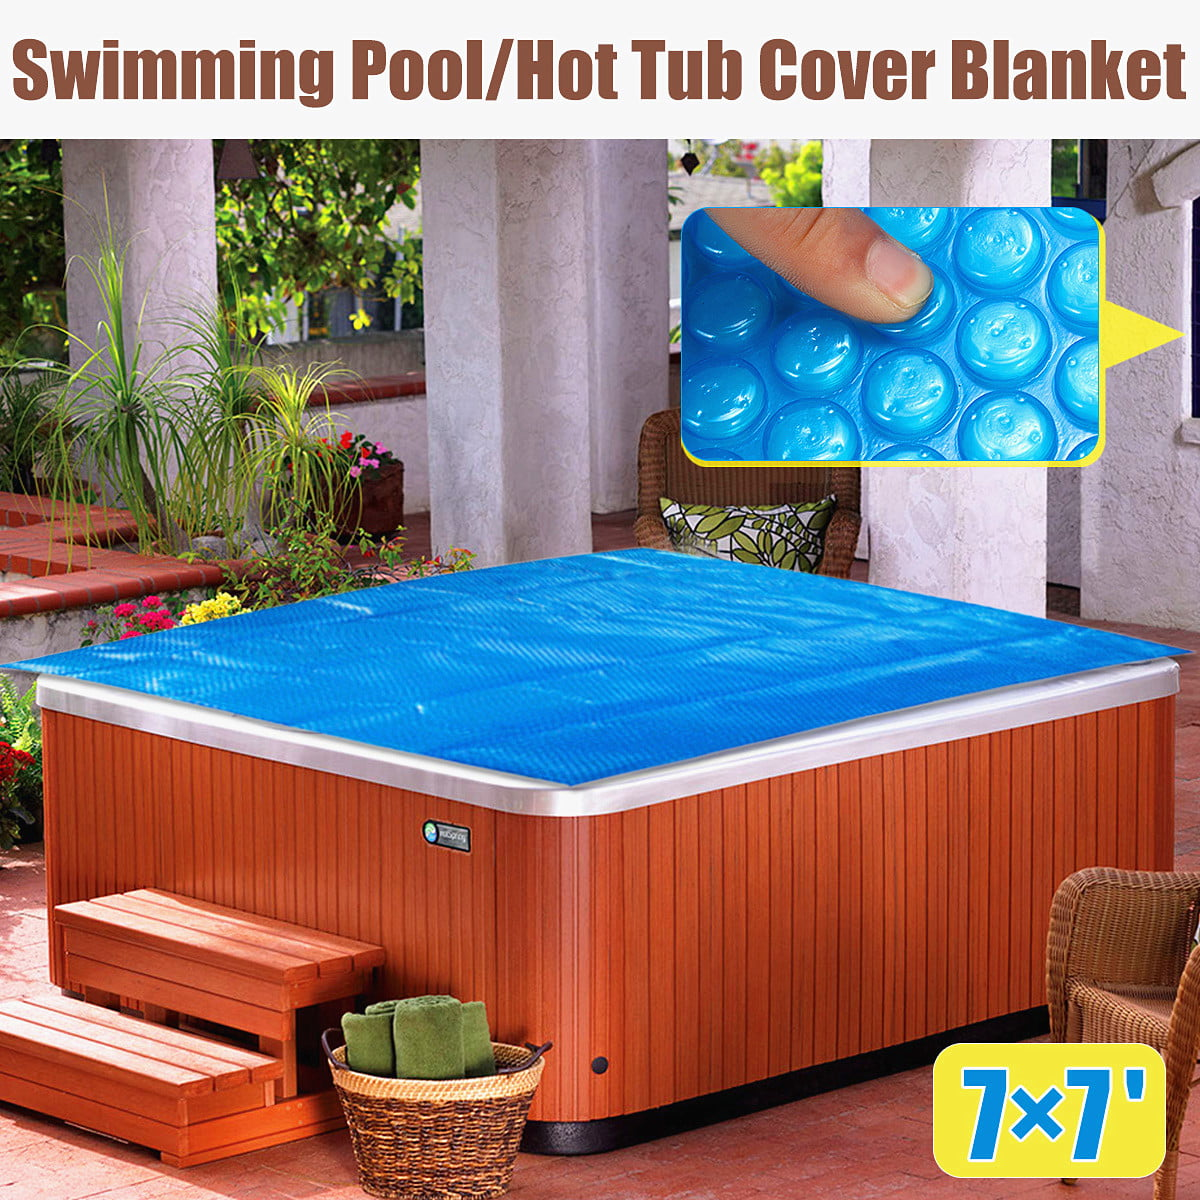 Swimming Pools & Hot Tubs Spa Hot Tub Cover Thermal Blanket ...